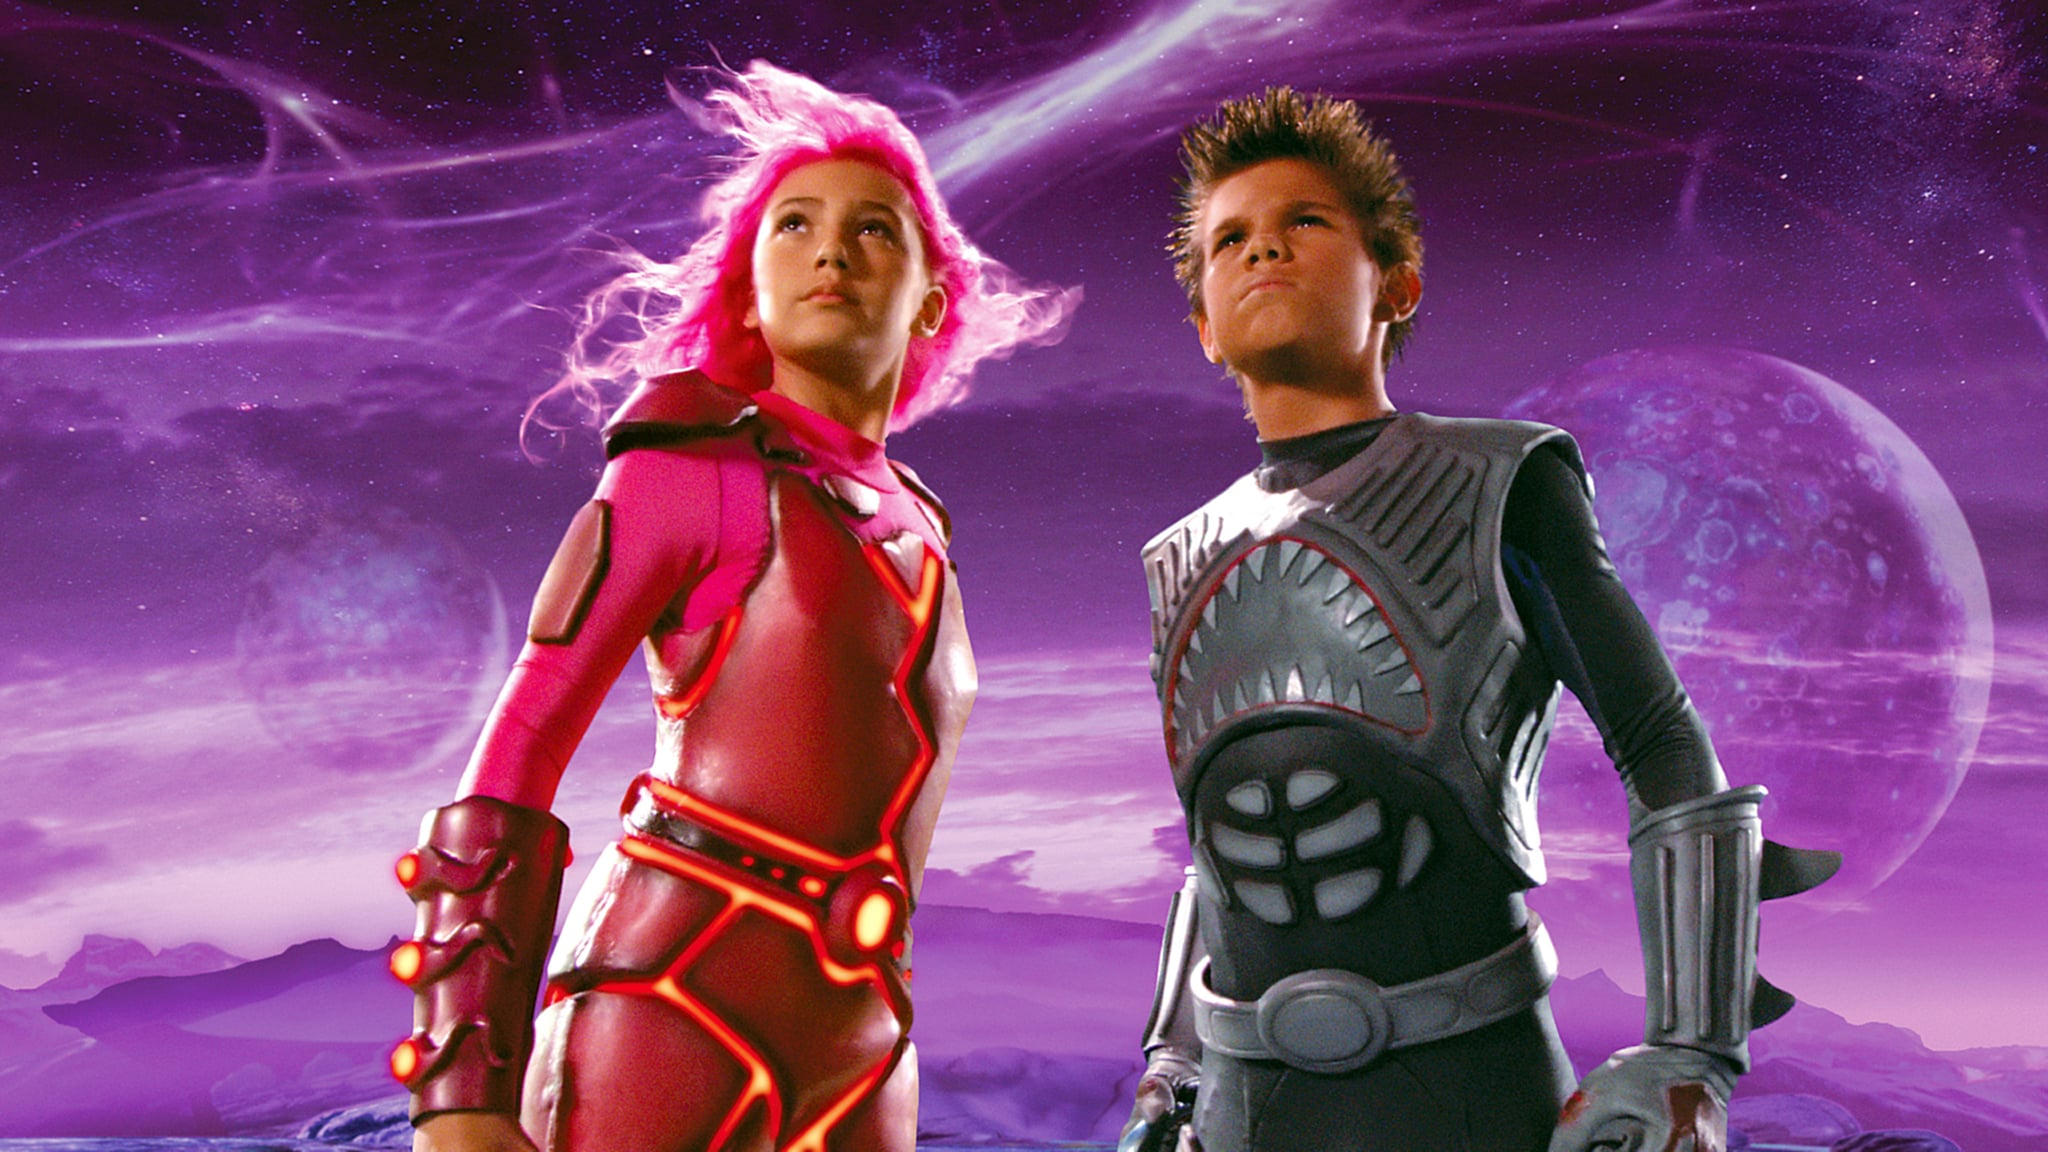 THE ADVENTURES OF SHARK BOY AND LAVA GIRL IN 3D, Taylor Dooley, Taylor Lautner, 2005, (c) Dimension Films/courtesy Everett Collection